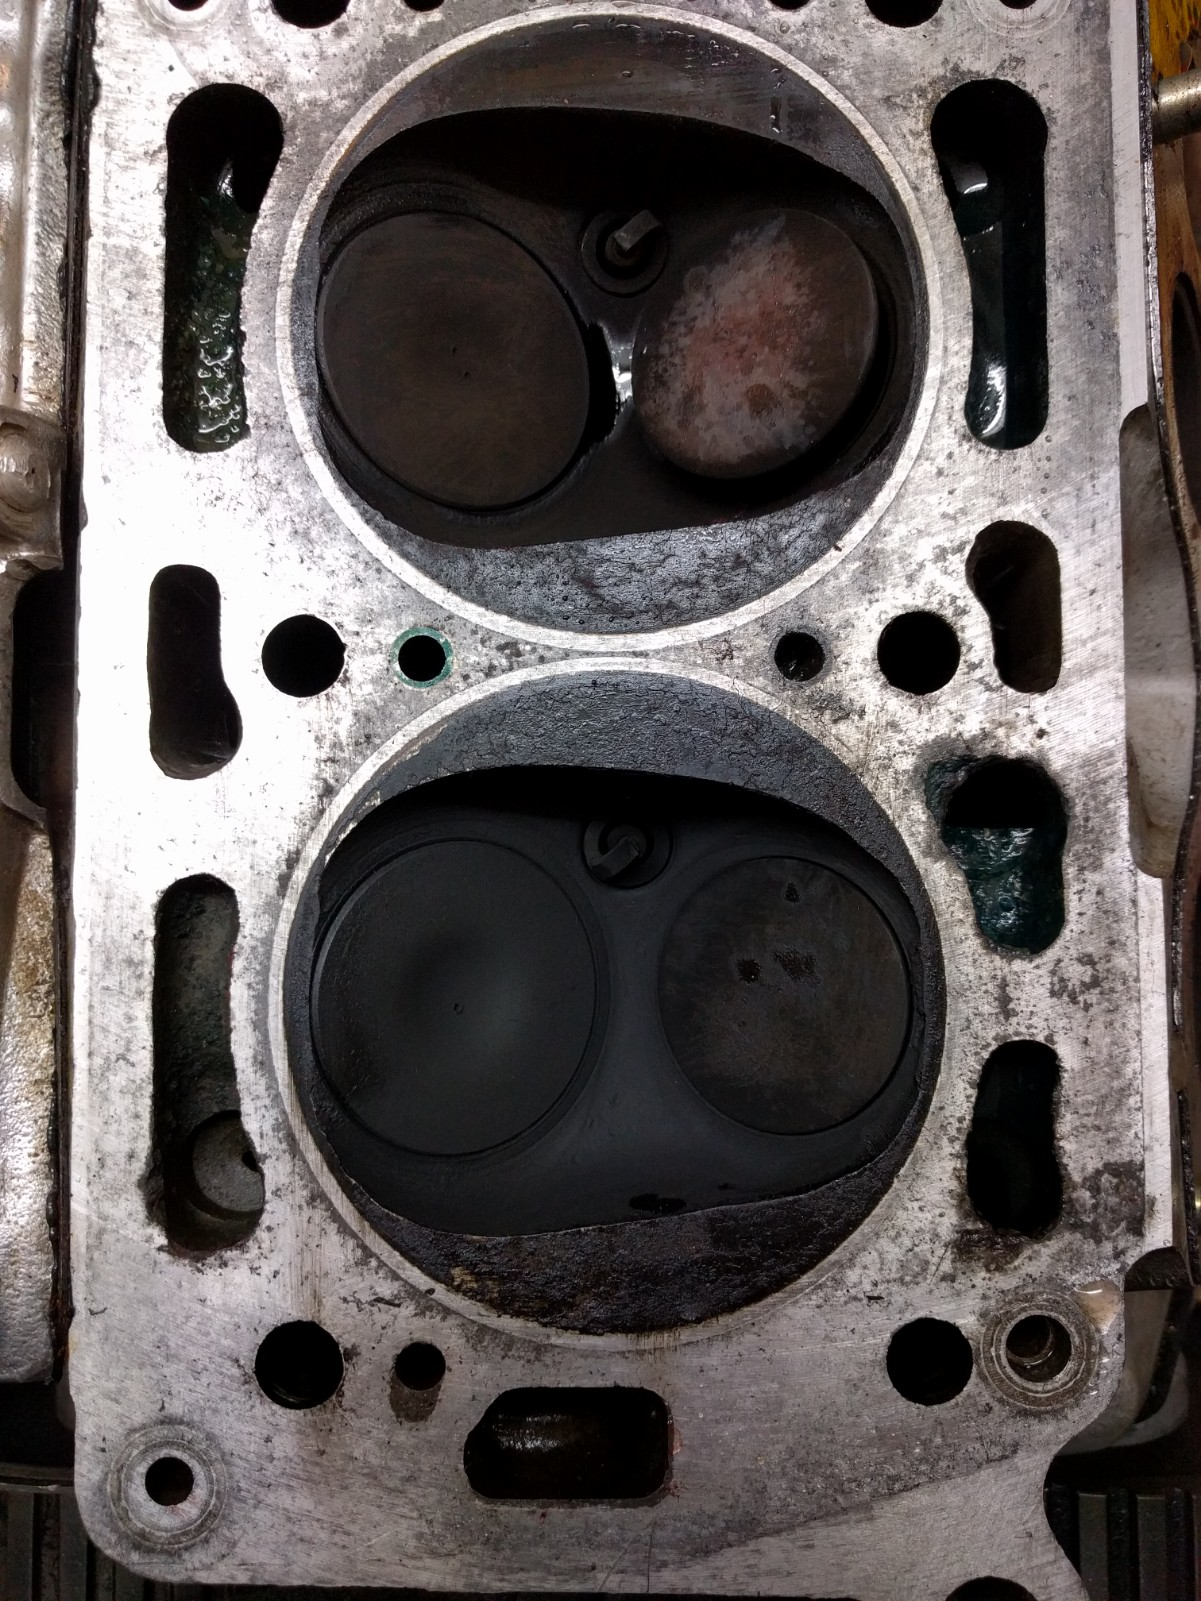 Cylinder12_uncleaned.jpg